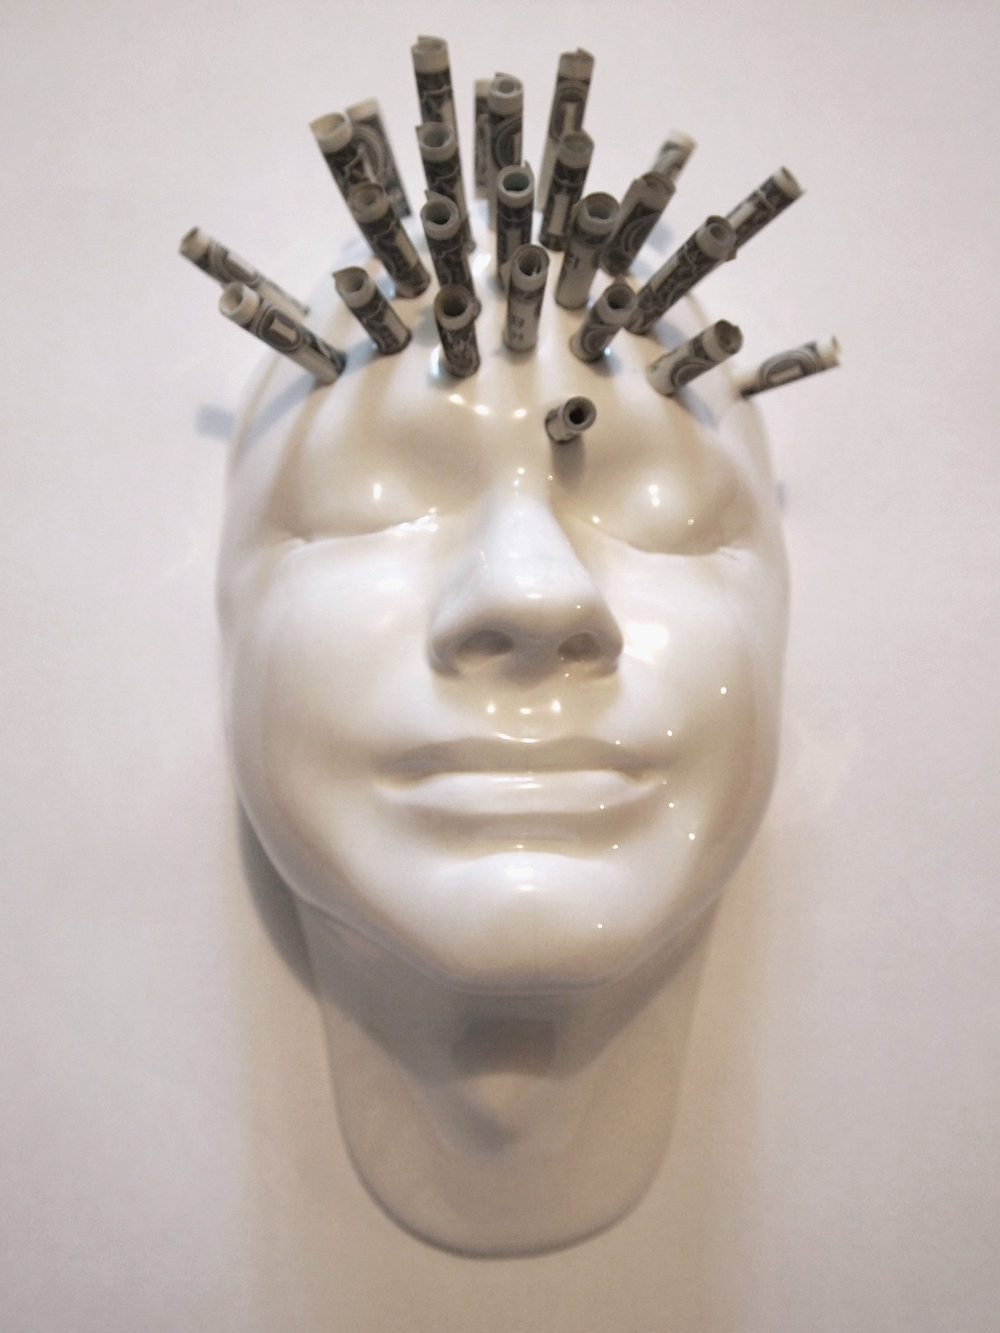 Craig Paul Nowak ceramic face dollar money on mind art sculpture